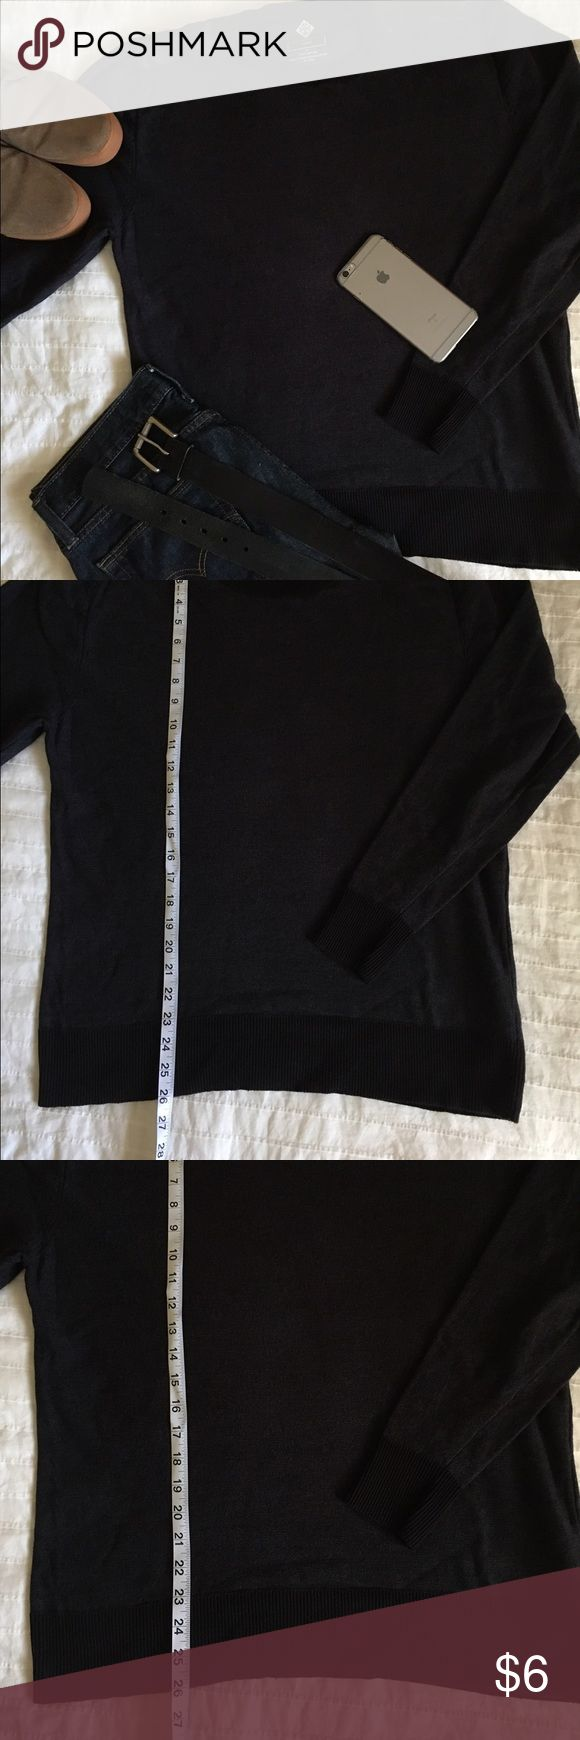 Men's crewneck sweater w/ leather shoulders. This is a men's crewneck sweater with leatherette shoulders.  Marled navy blue in size Large.  Great dressed up or dressed down hanging out on casual days.  Excellent used condition.  Worn once.  No pills, no snags, no tears. Sweaters Crewneck